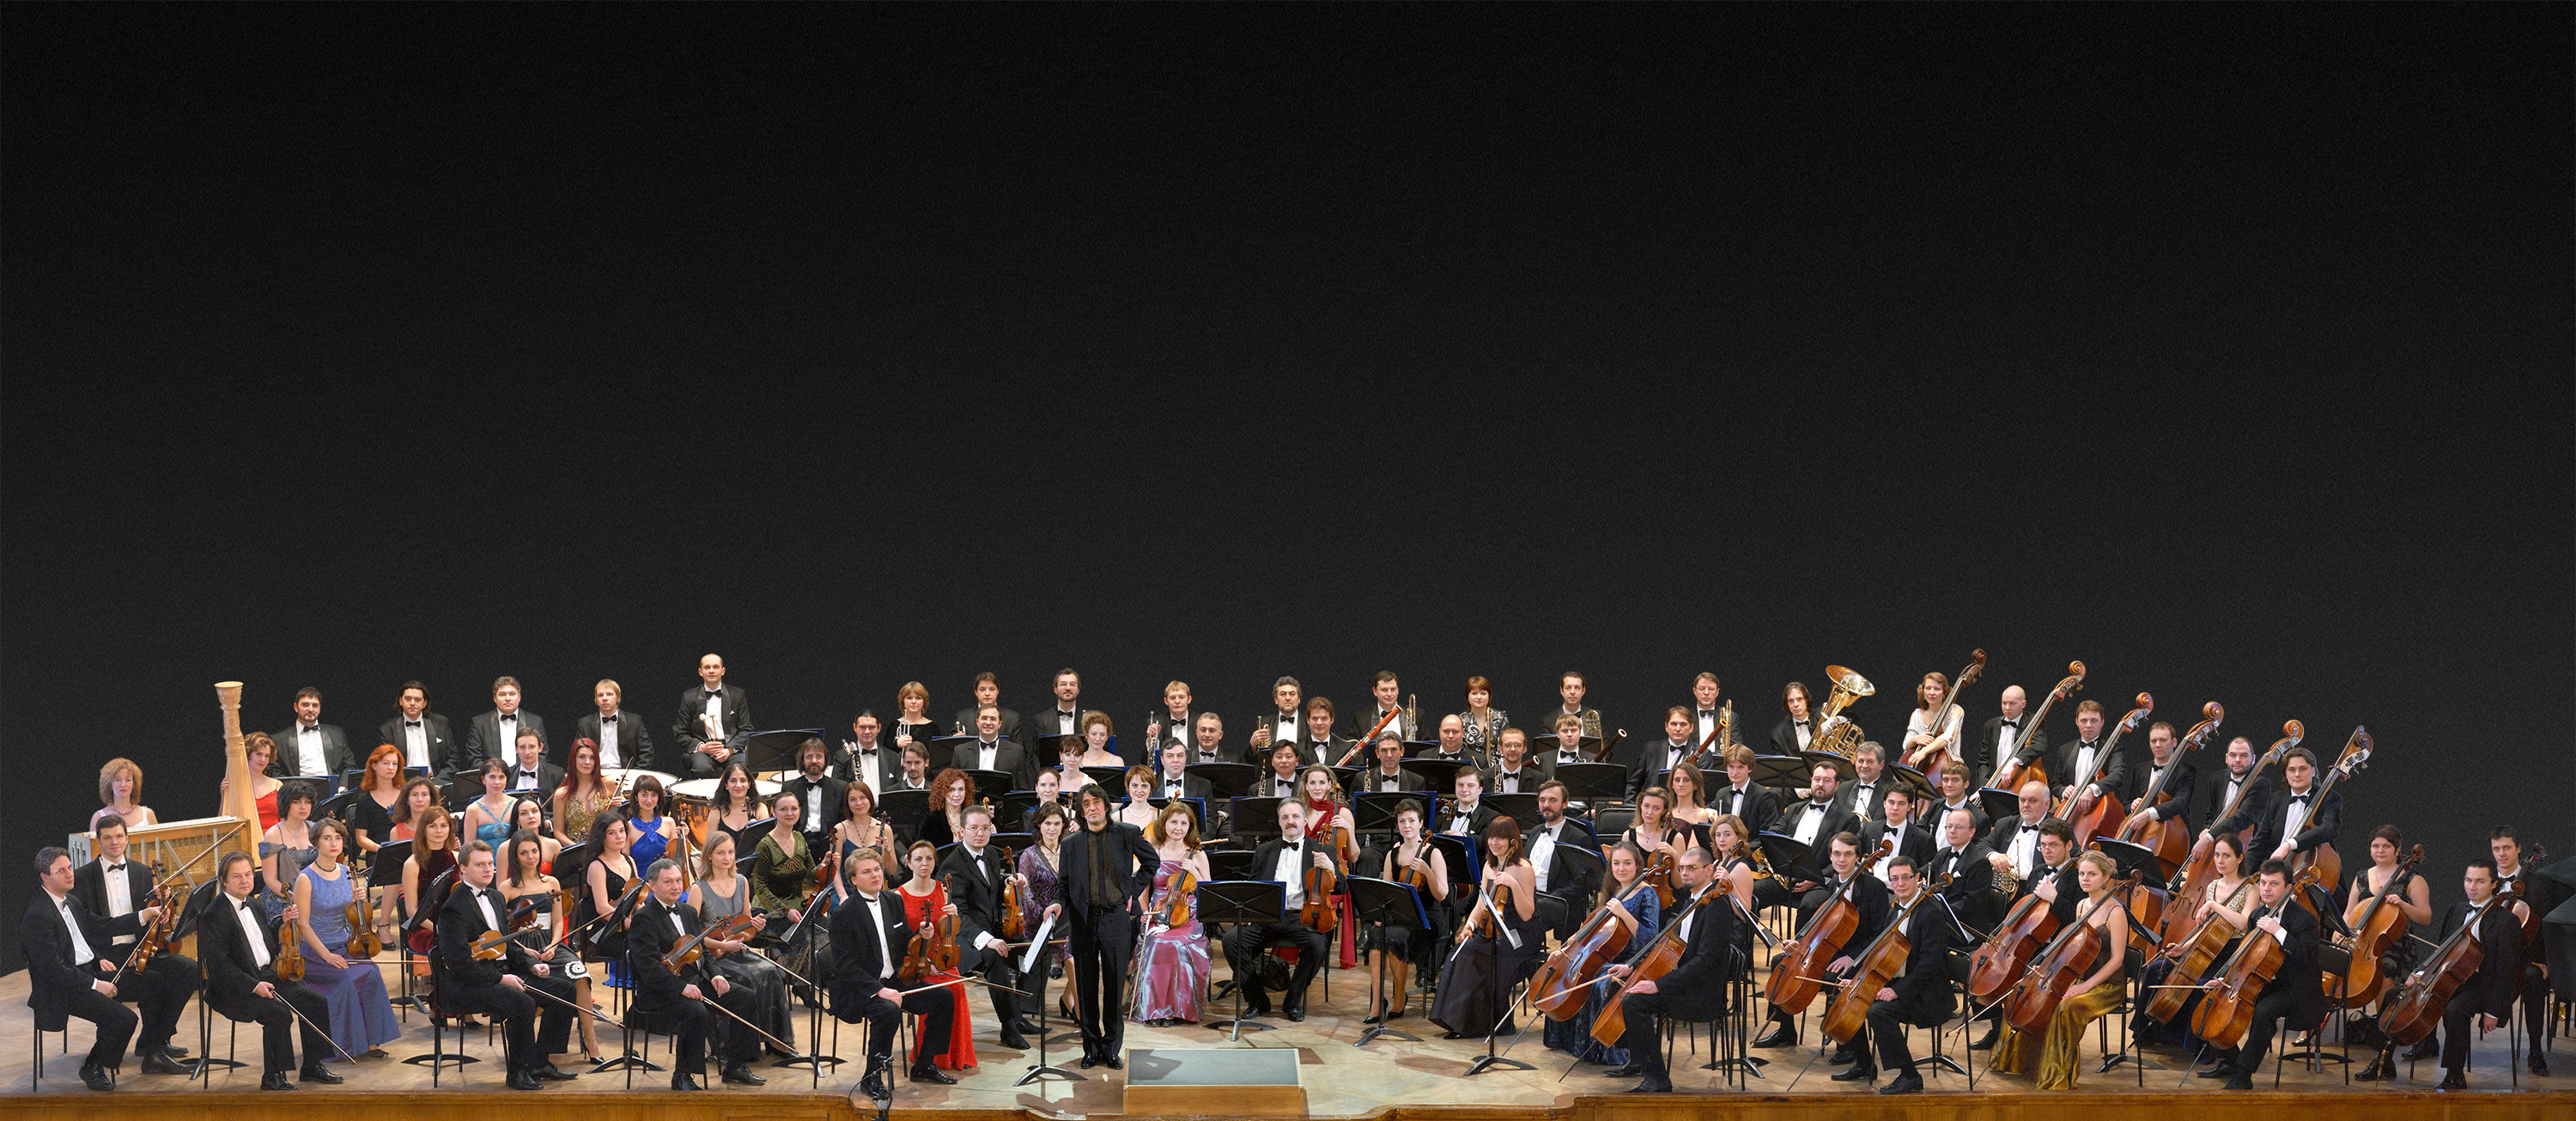 Orchestra Background Related Keywords & Suggestions - Orchestra ...